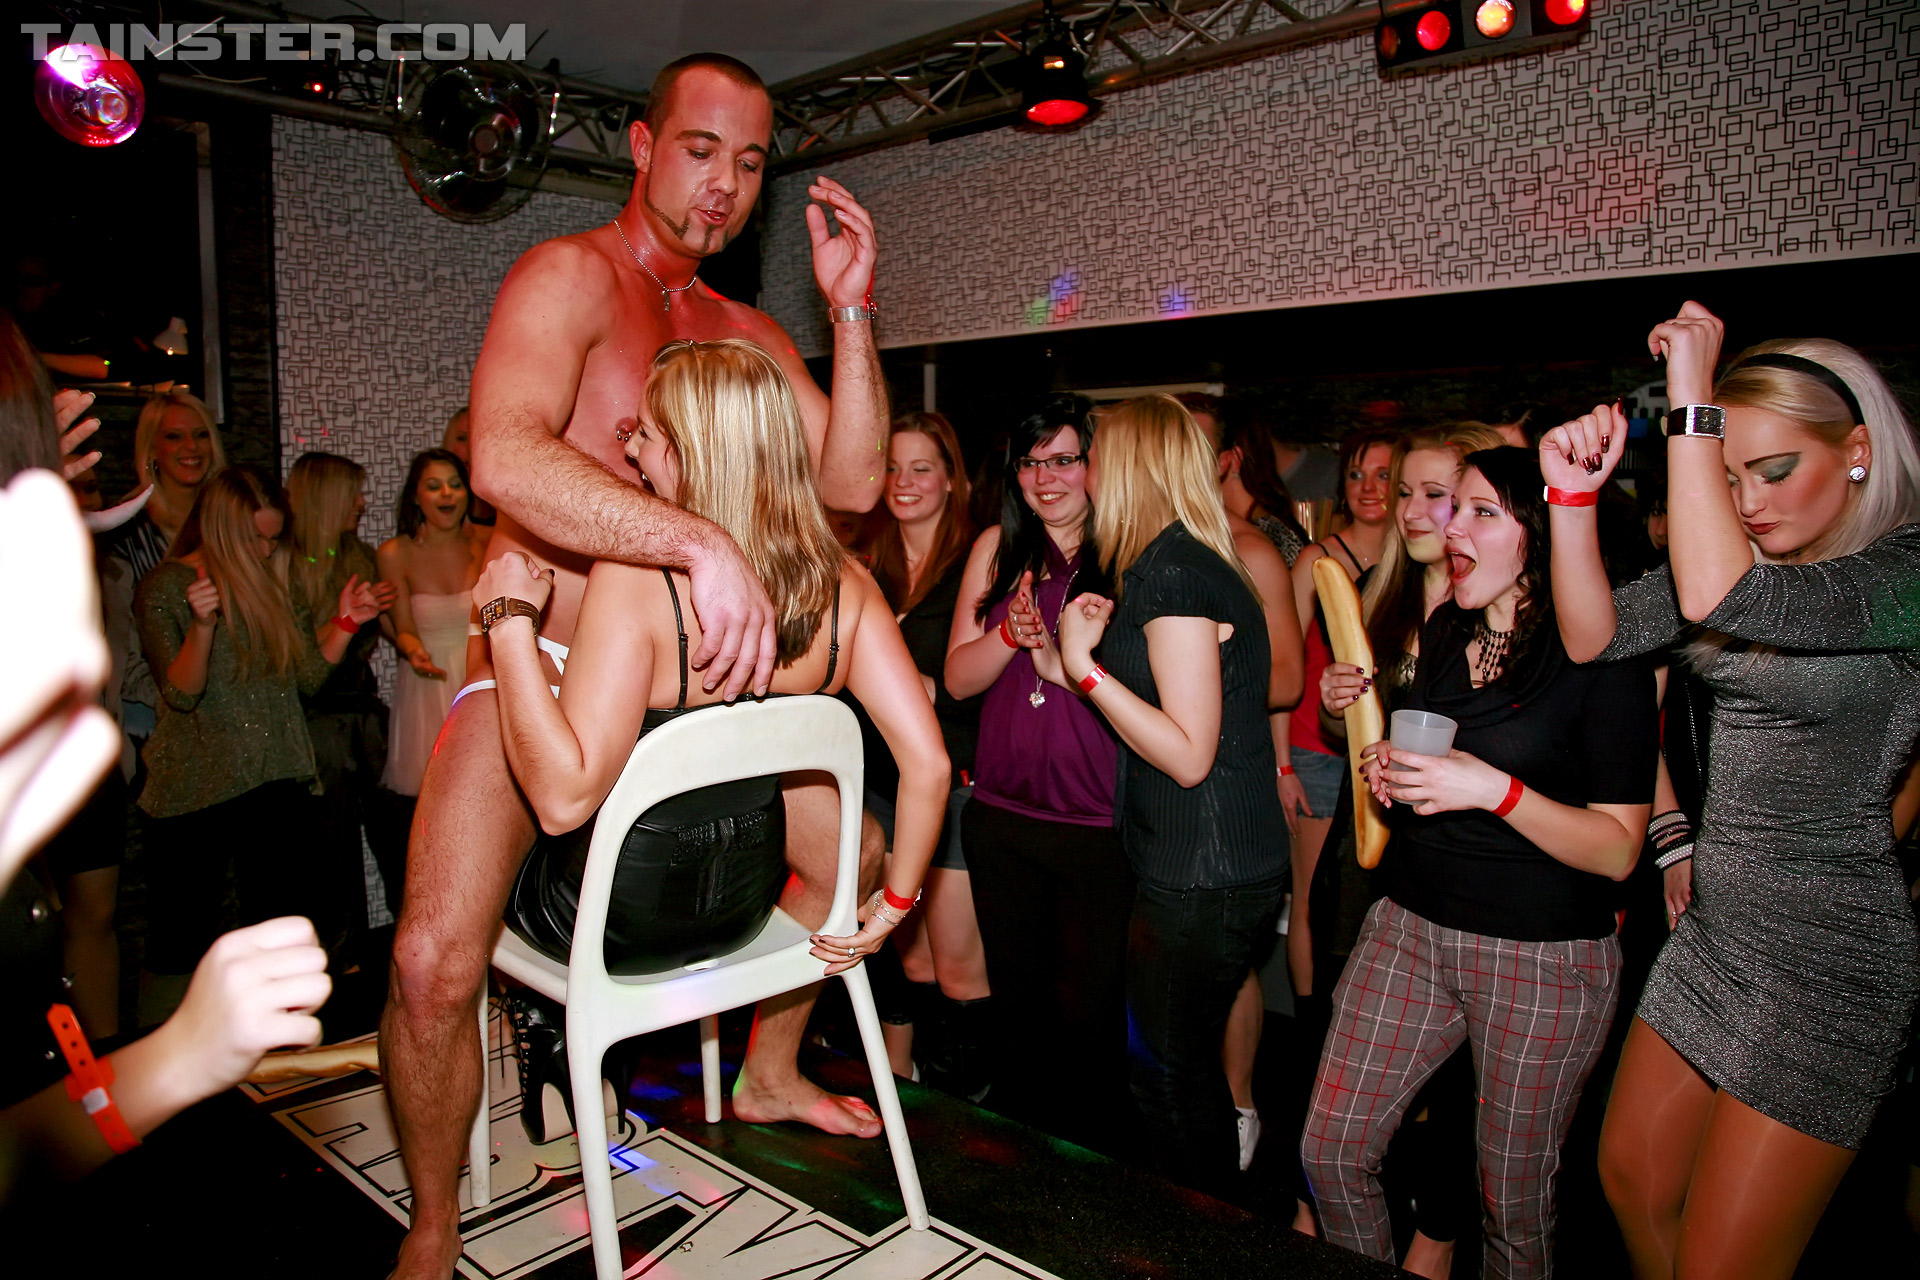 male stripper gets lucky on stage